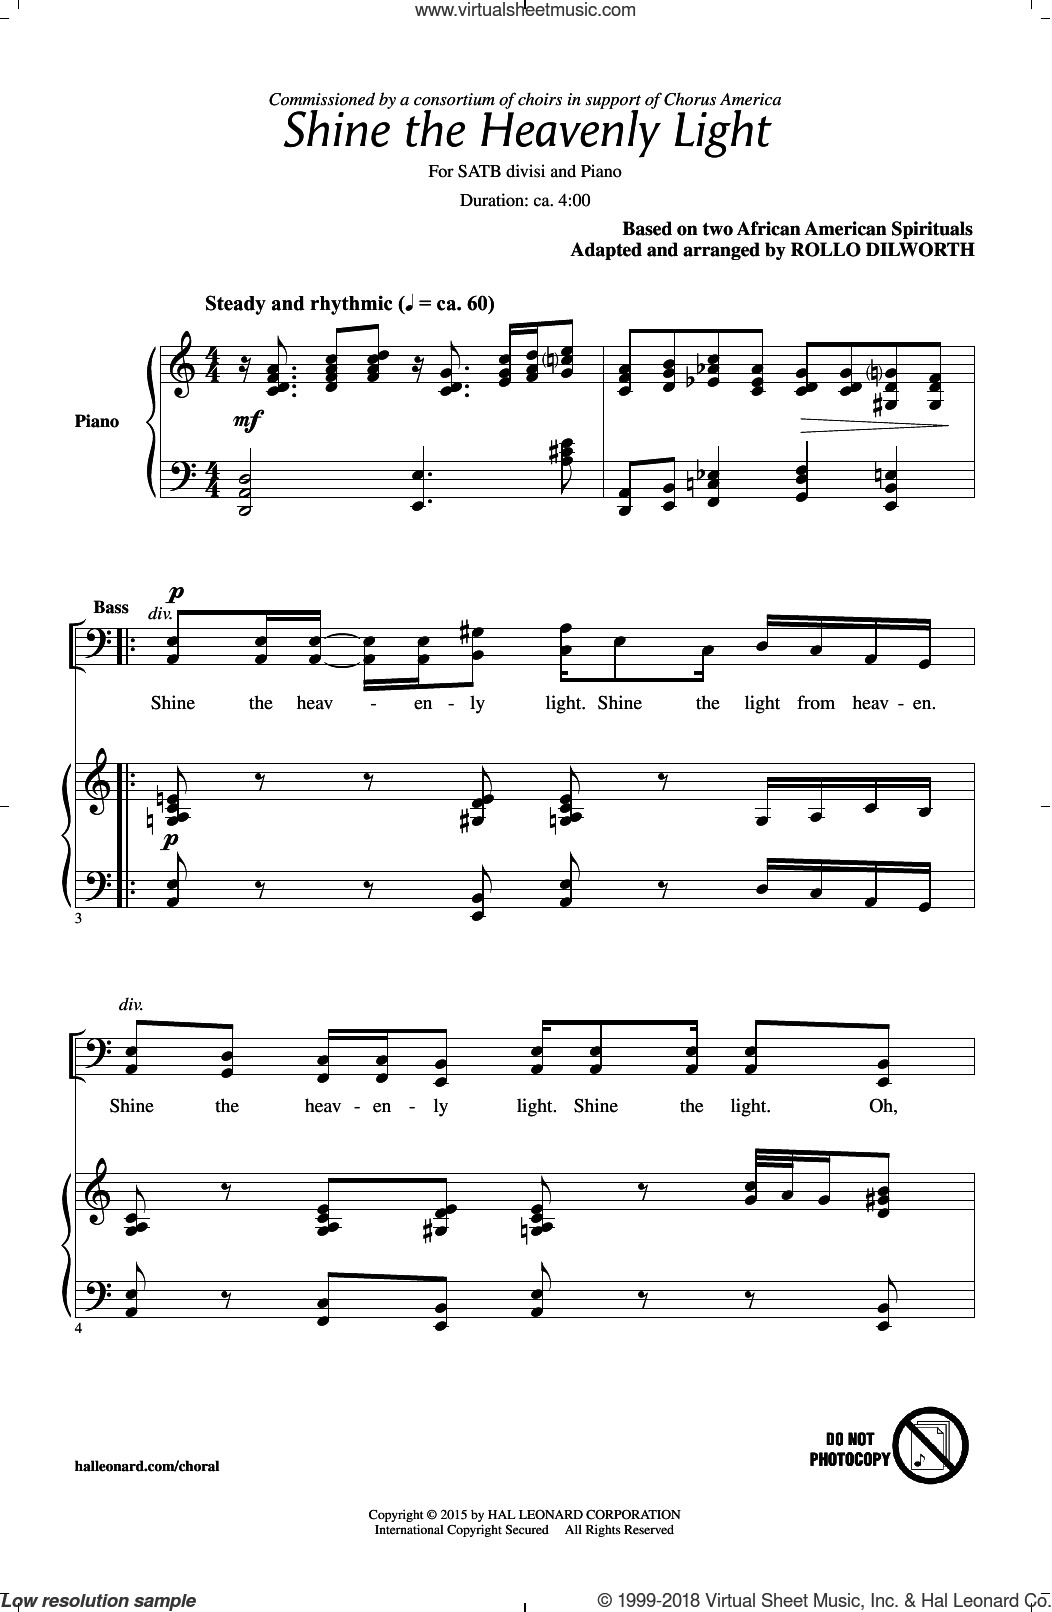 Hold Out Your Light sheet music for choir and piano (SATB) by Rollo Dilworth and Miscellaneous. Score Image Preview.